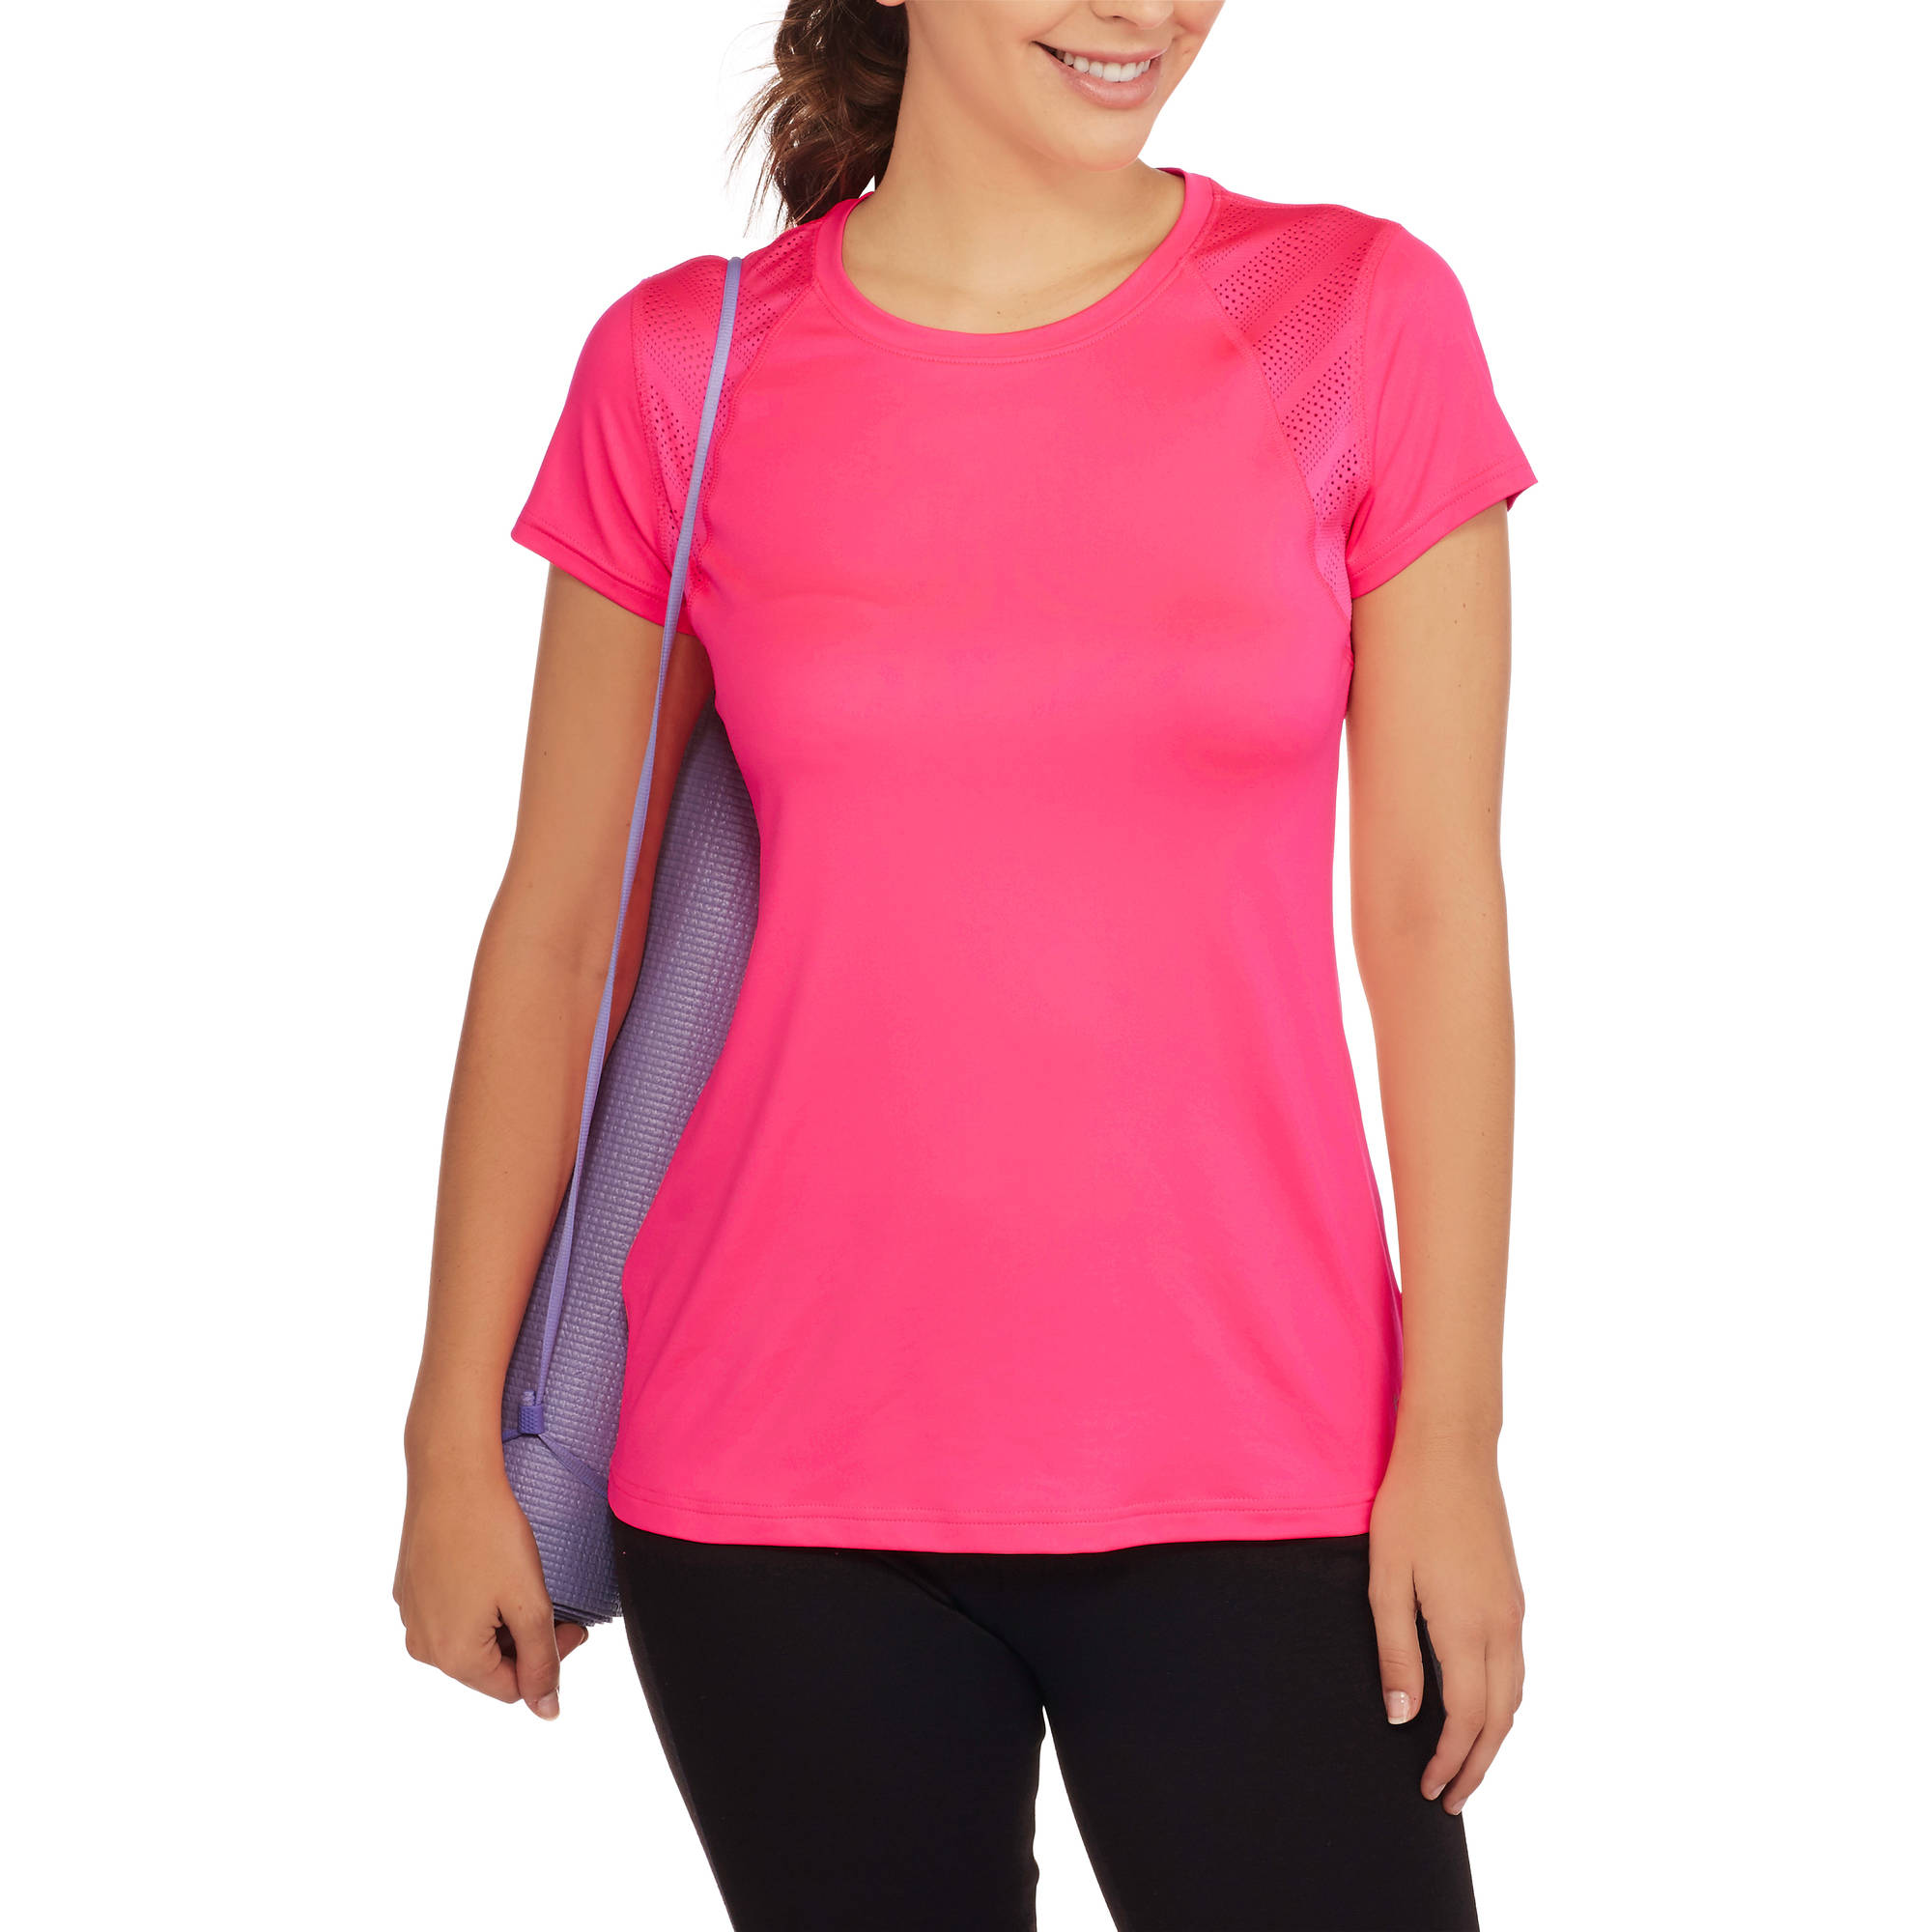 Danskin Now Women's Fitted Performance Tee with Sporty Mesh Insets